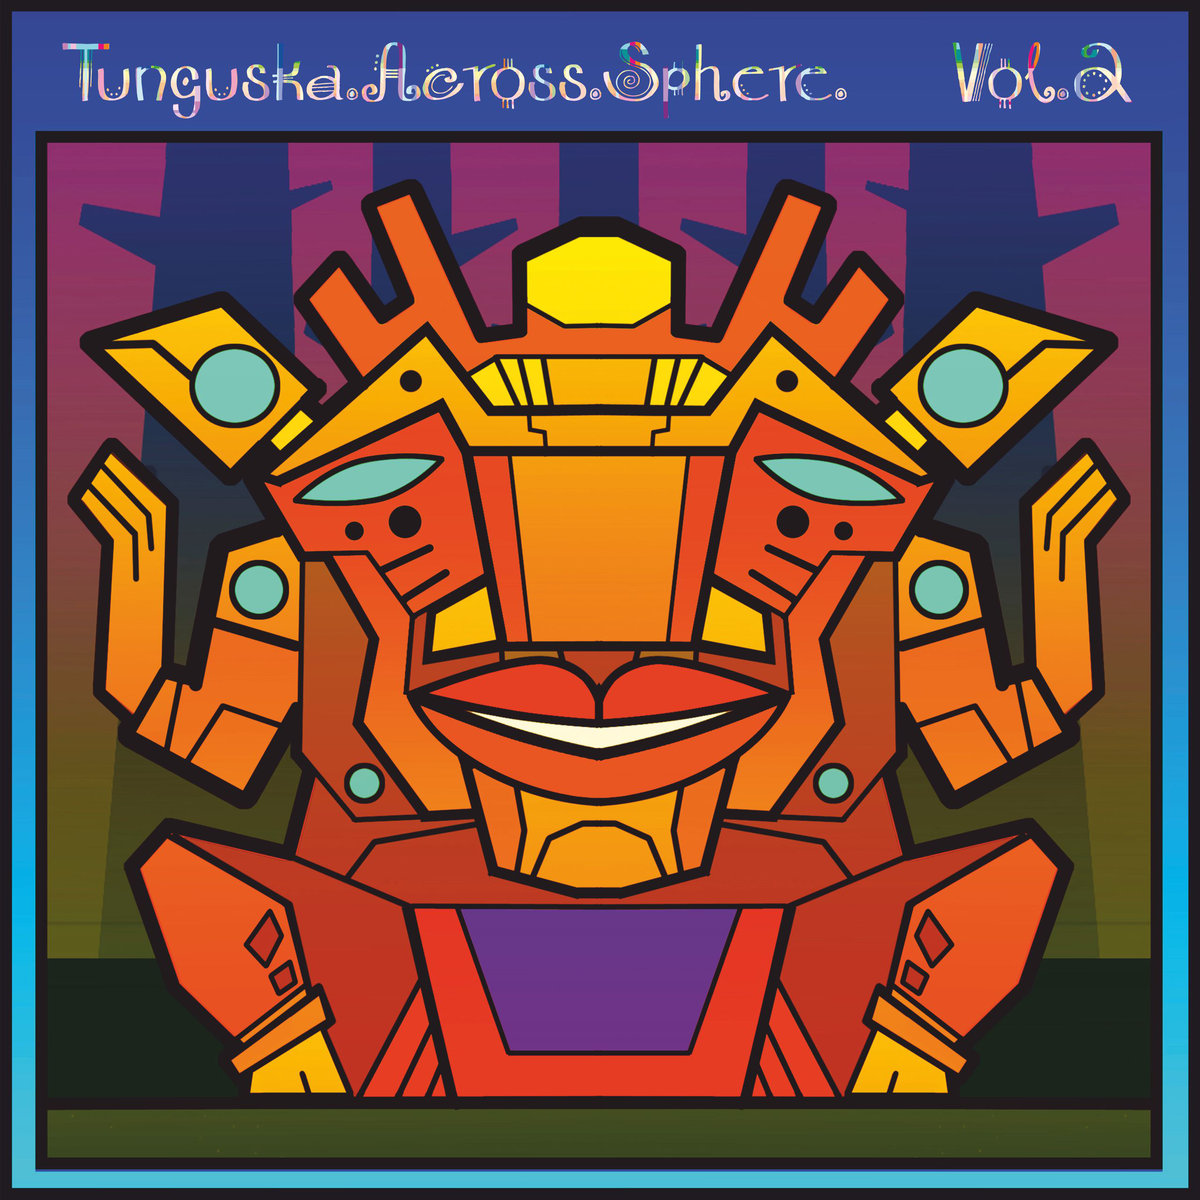 Luminance - Jazzbookah @ 'Ellipsis II - Tunguska.Across.Sphere. Vol.2' album (electronic, ambient)